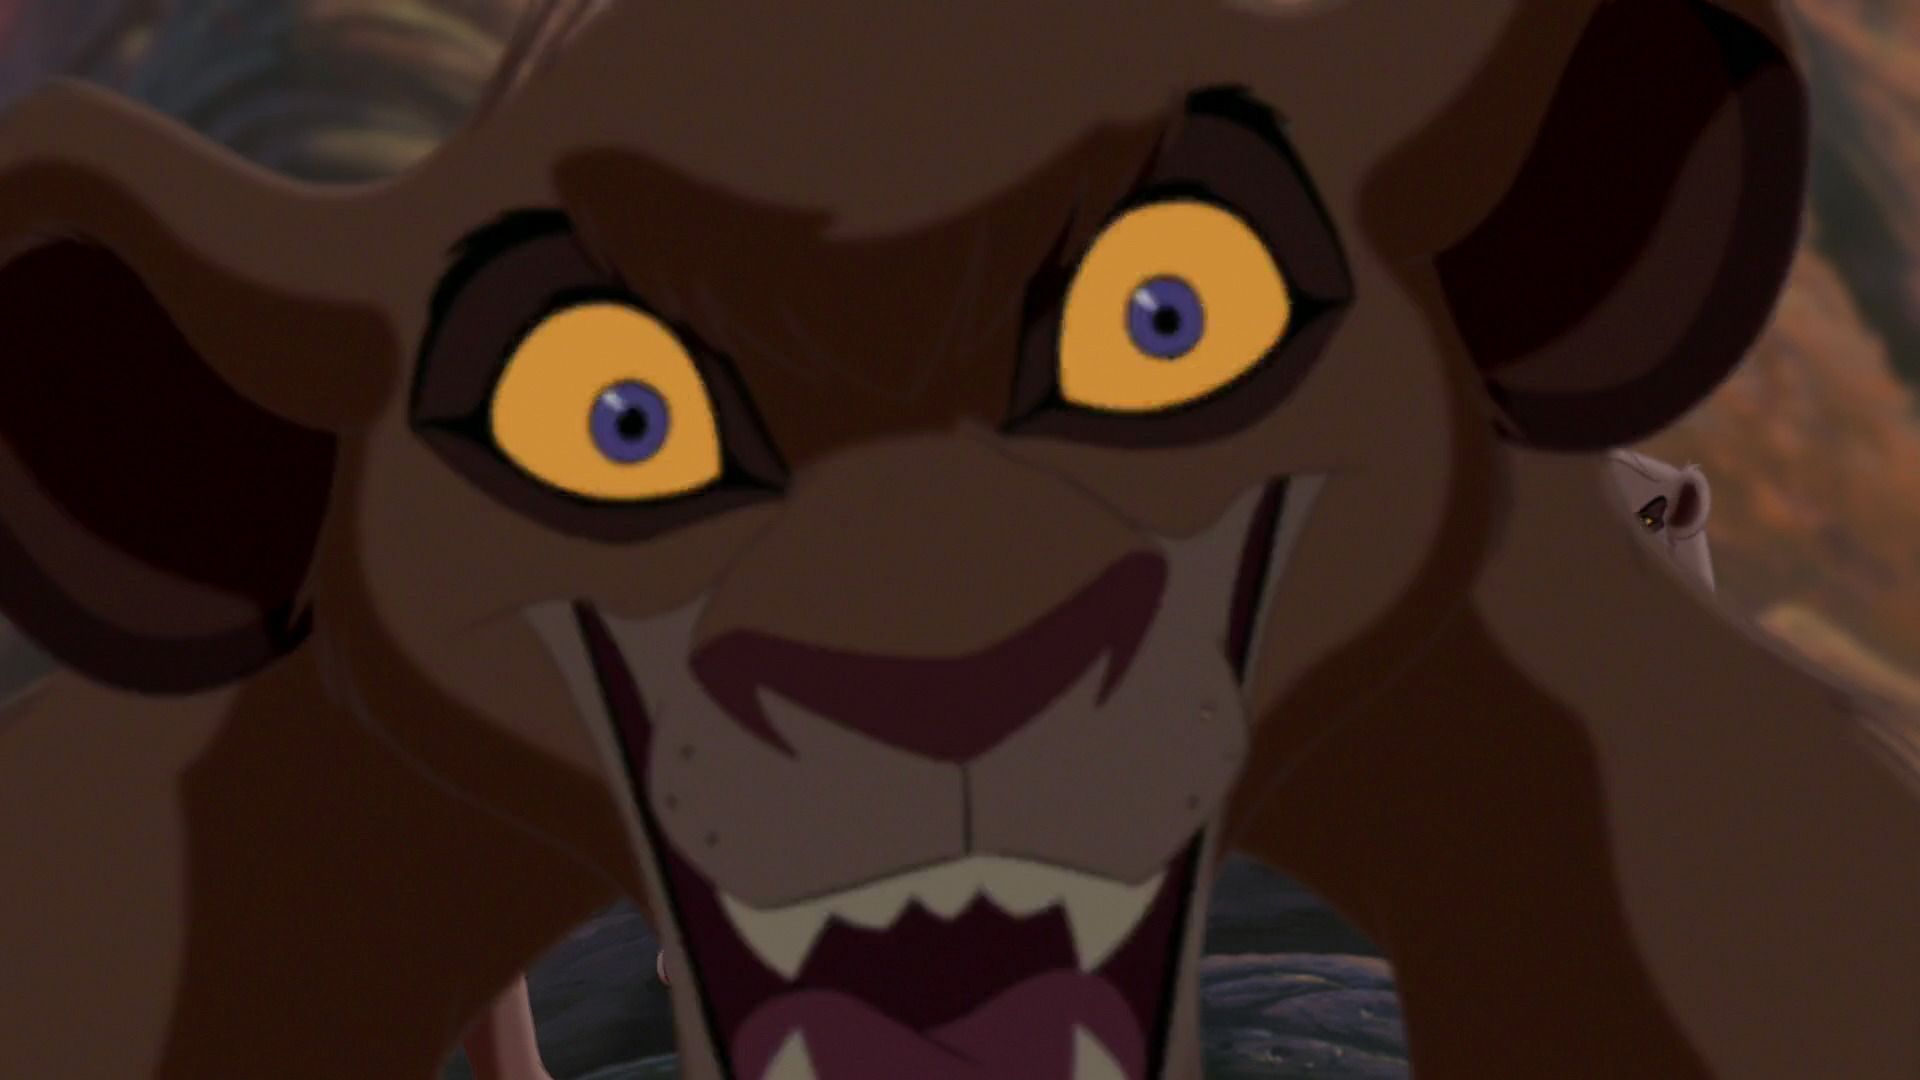 lion-king2-disneyscreencaps.com-6305.jpg